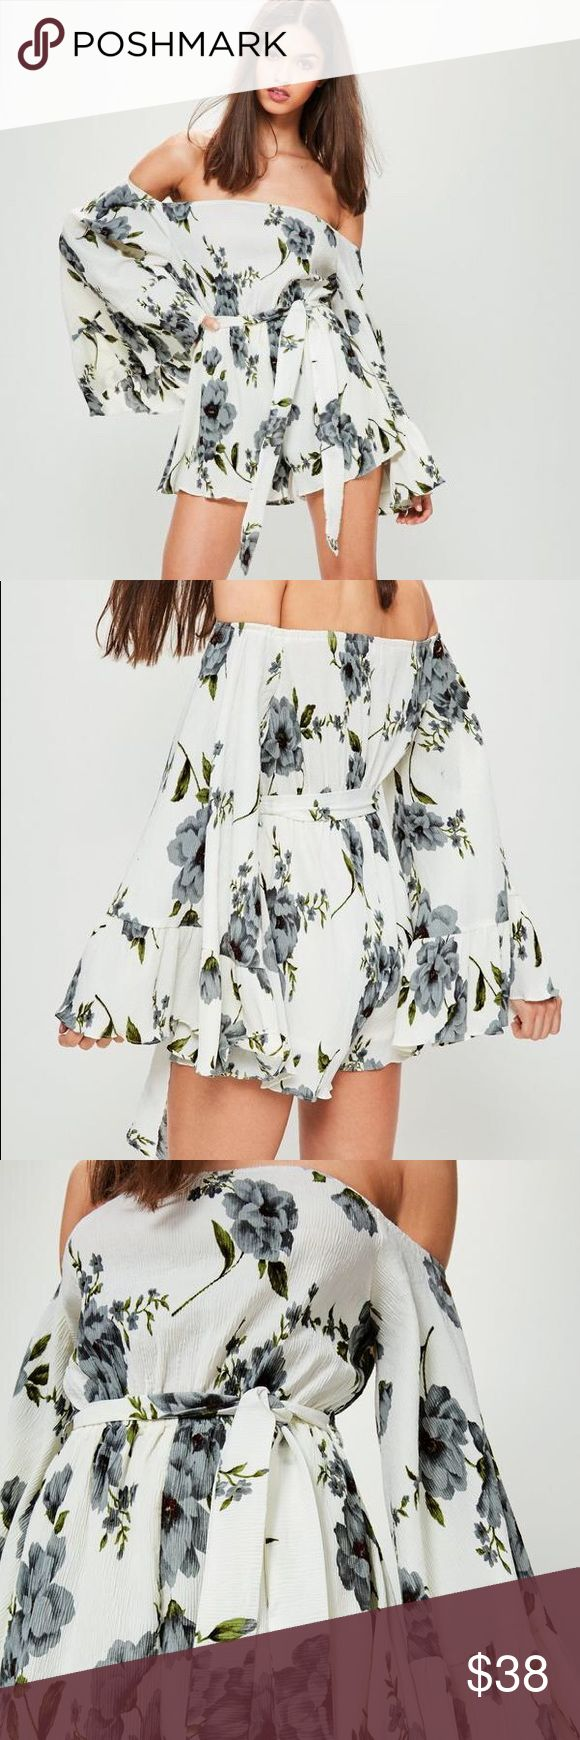 """Missguided Crinkle Floral Print Playsuit NWT! Missguided playsuit size 4. Step up your florals and slip into this crinkle effect romper featuring a delicate floral print, bardot style, off the shoulder, extra wide bell sleeves and waist tie to cinch your waist. Lining at the bottom.  100% polyester  approx front length 28"""", across bust 18"""" Missguided Dresses"""